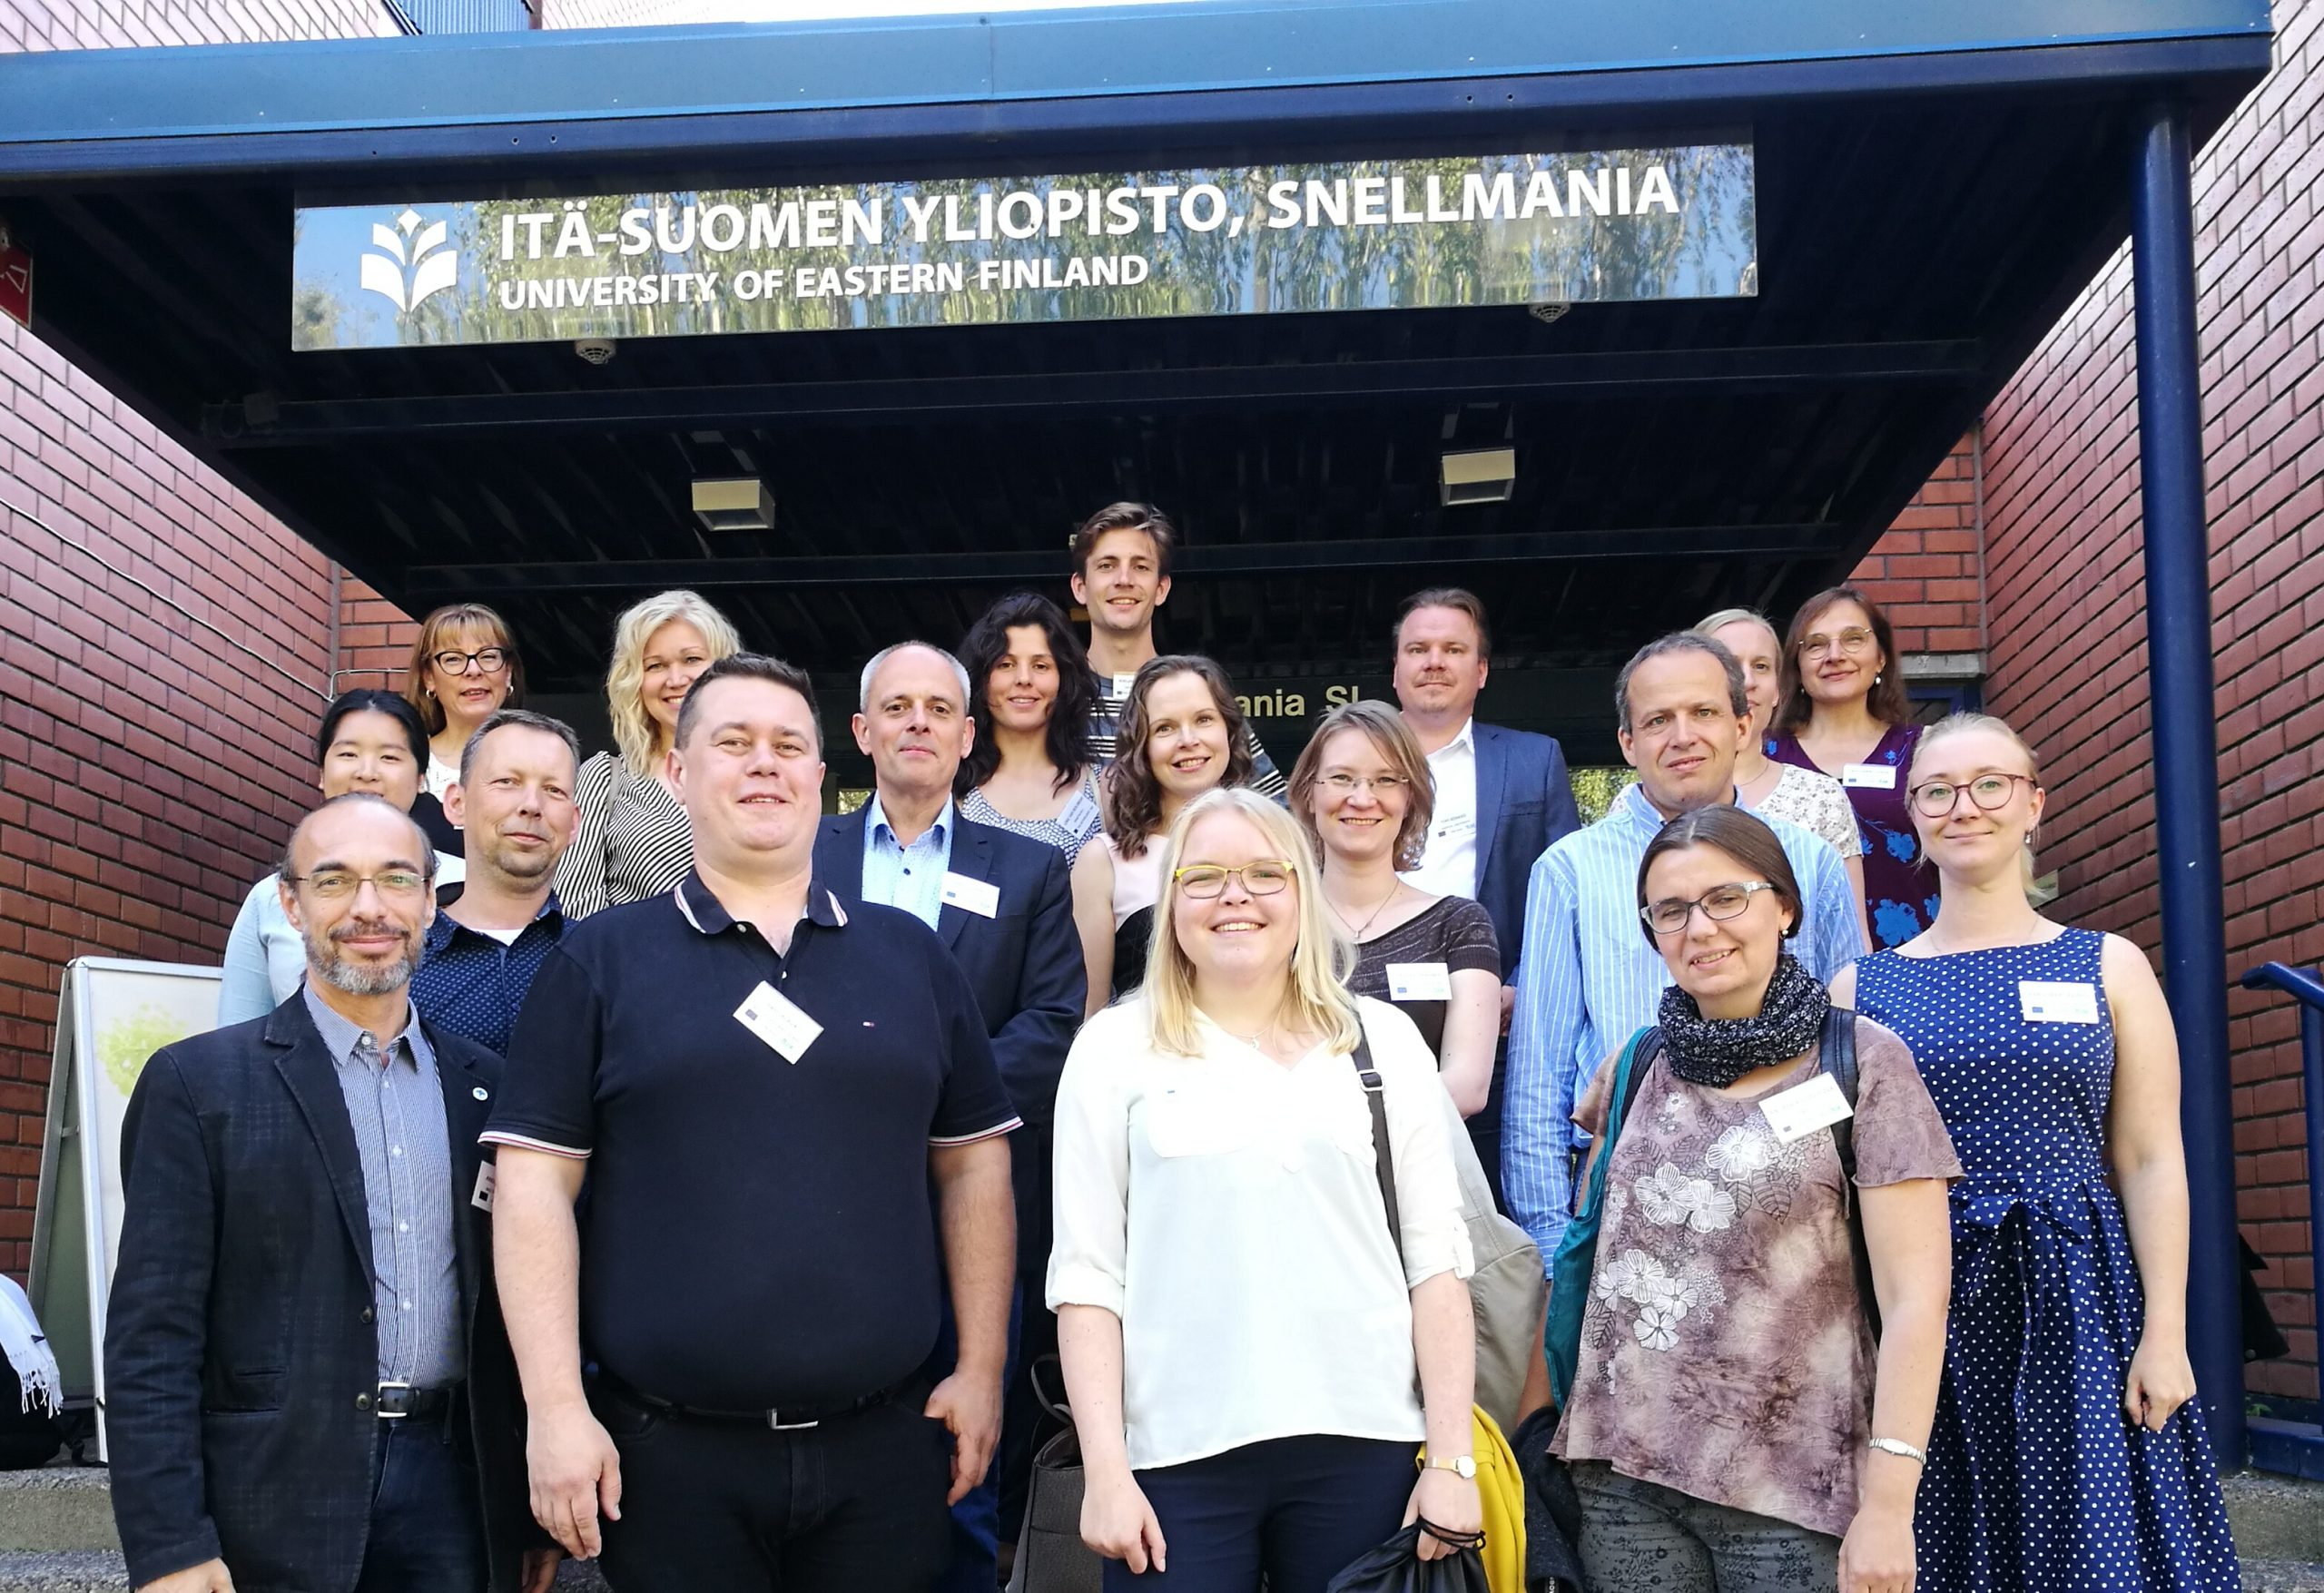 Group picture of consortium members at the entrance of the University of Eastern Finland